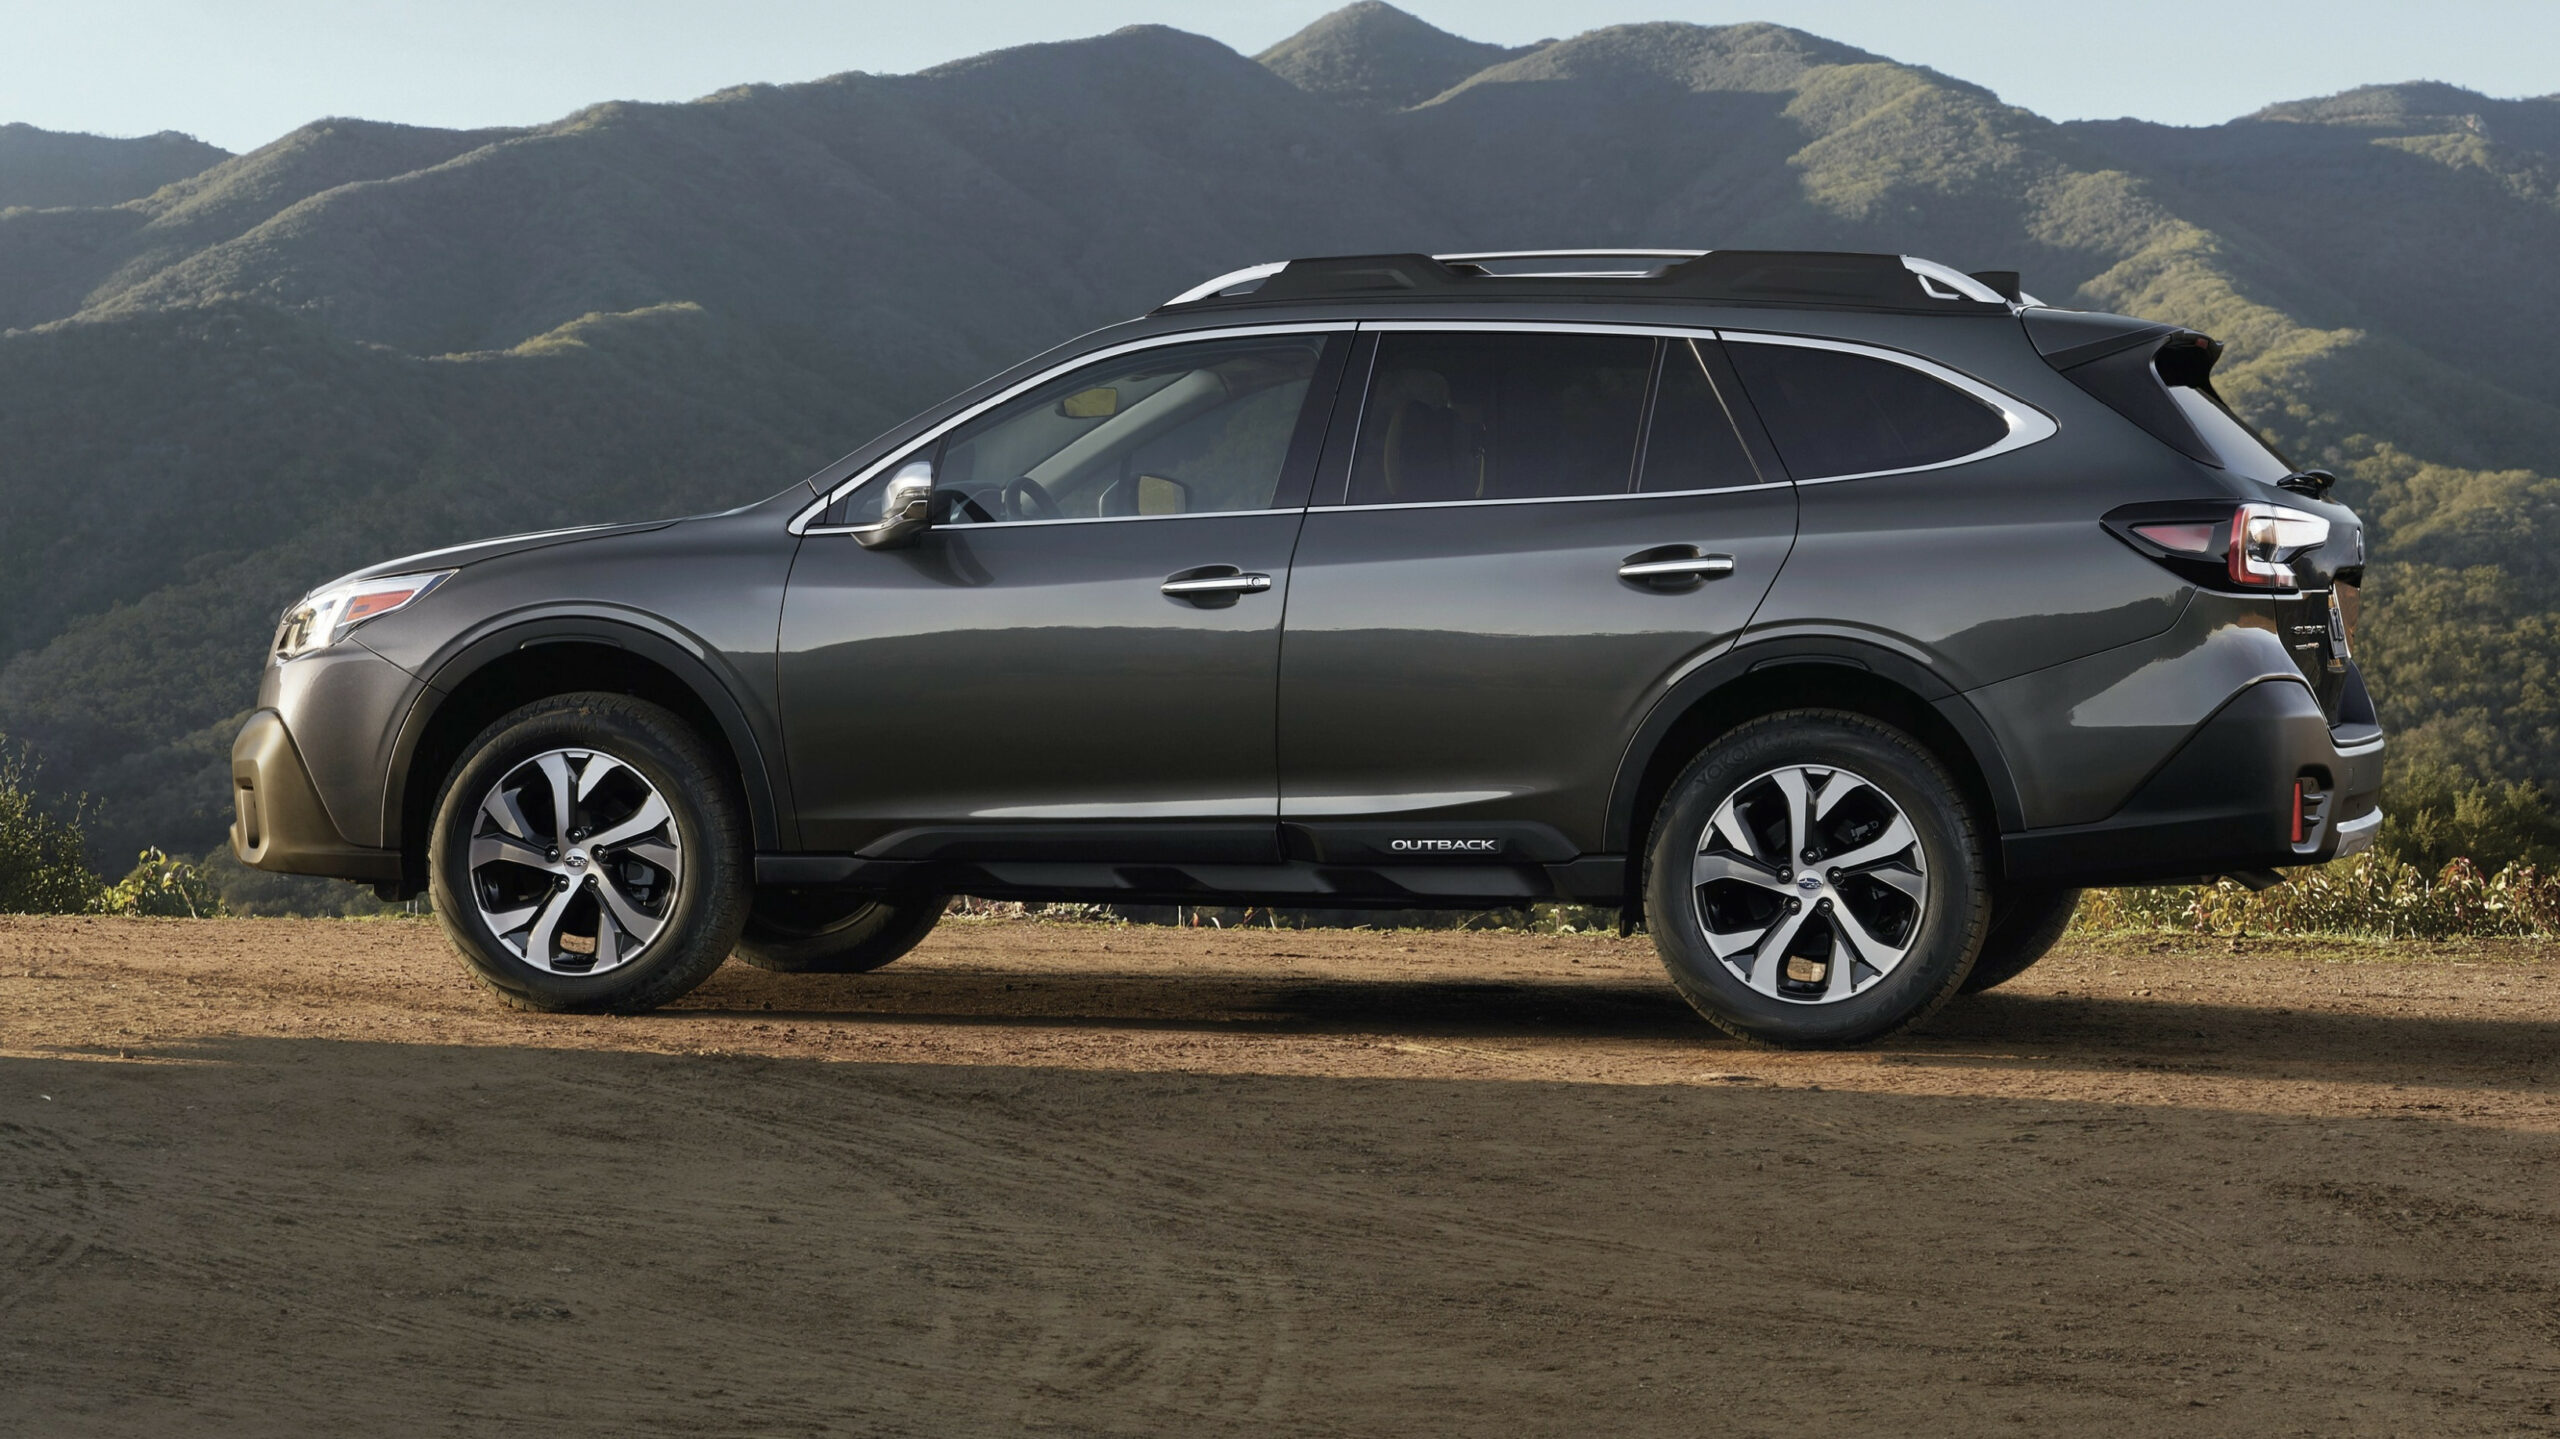 New Concept 2022 Subaru Outback Release Date